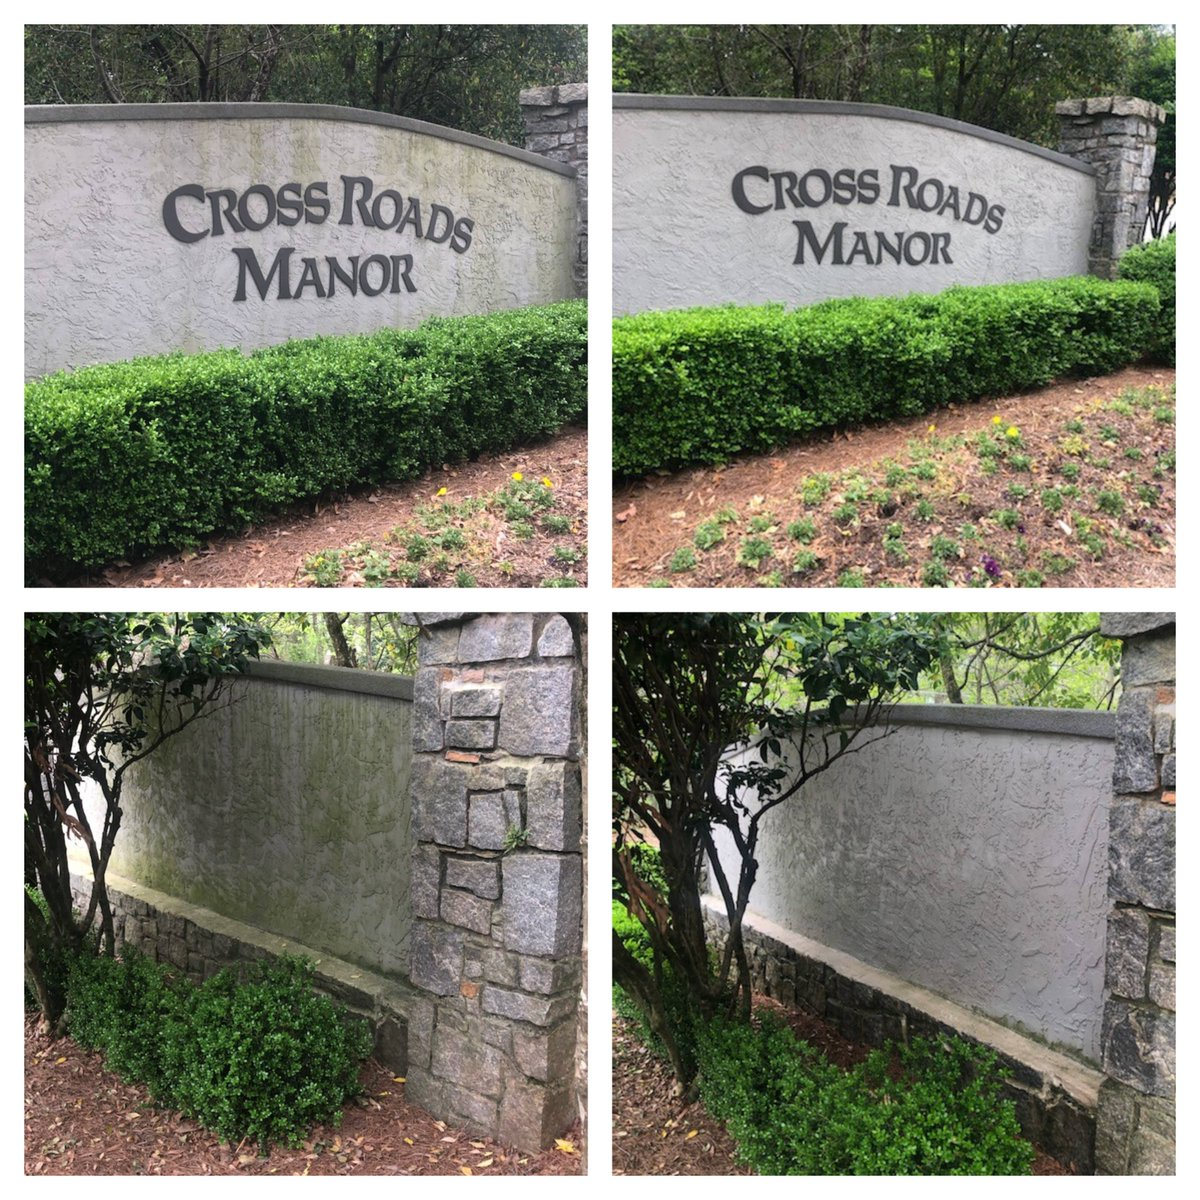 Check out these before and after pictures from a recent pressure washing project. https://t.co/SNjRRXlJgL #Repco #beforeandafter #pressurewashing #clean #signs #subdivision #Atlanta #project https://t.co/kOdAT9QbJg